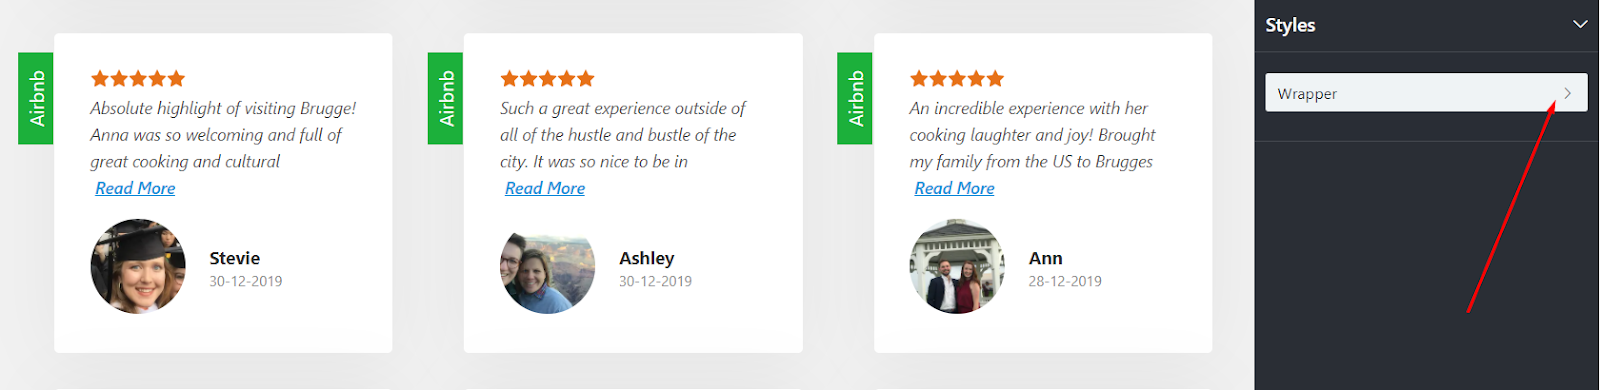 Airbnb reviews styles